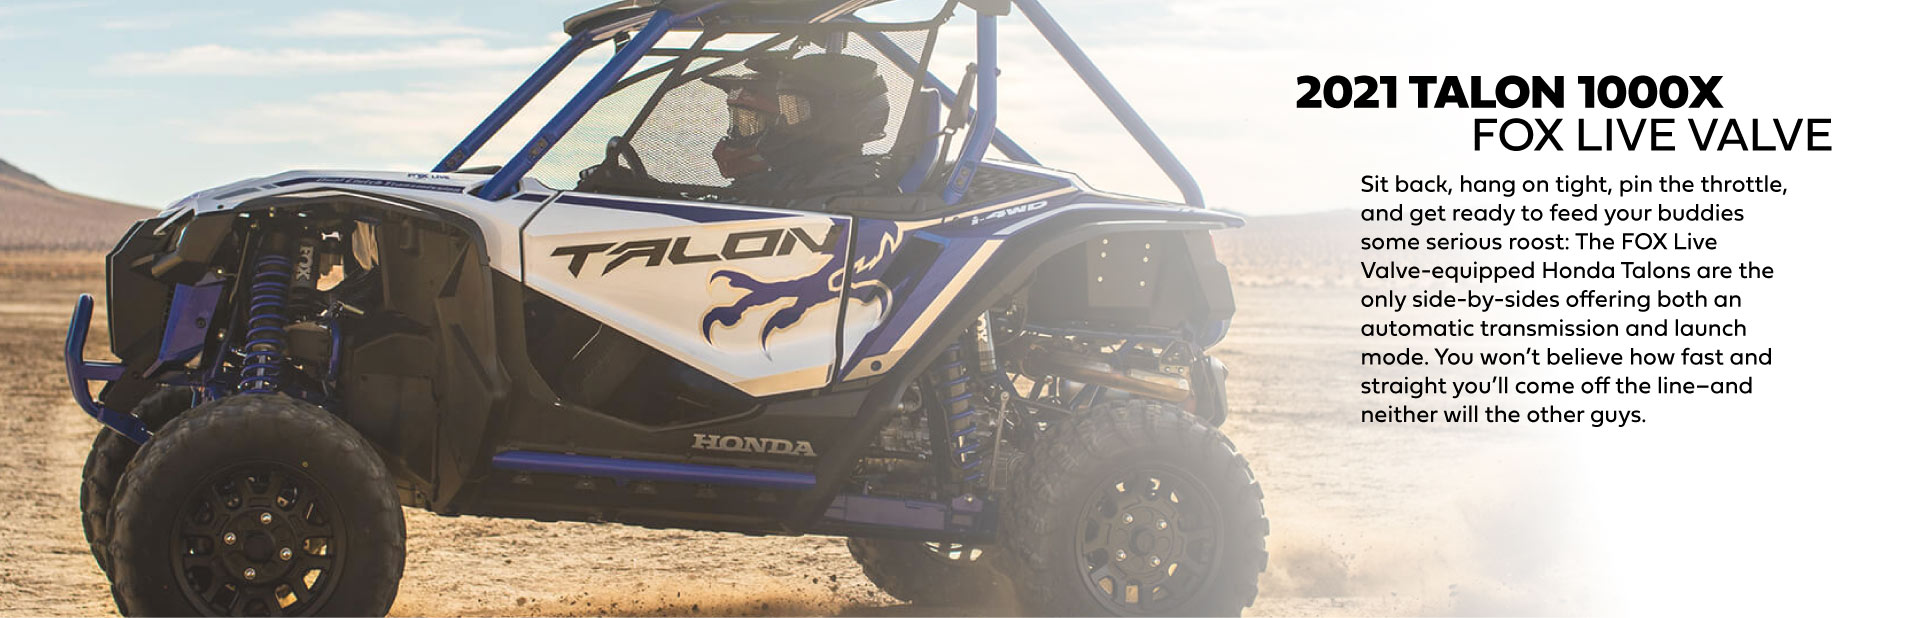 Motorcycles Atvs Powersports For Sale At Dealer Riverside Ca Malcolm Smith Motorsports